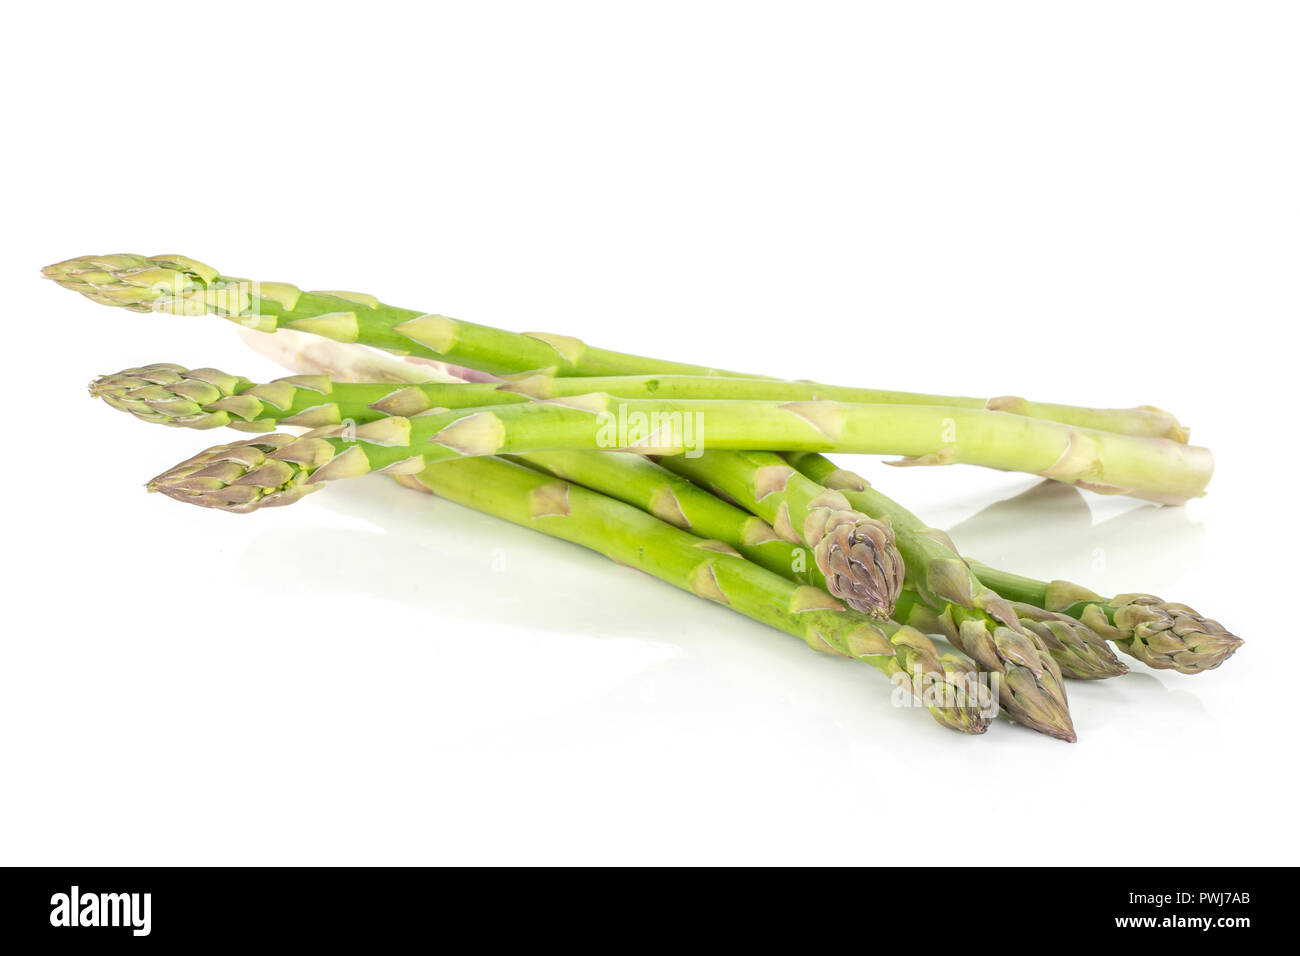 Lot of whole scaly fresh green asparagus spear isolated on white background - Stock Image